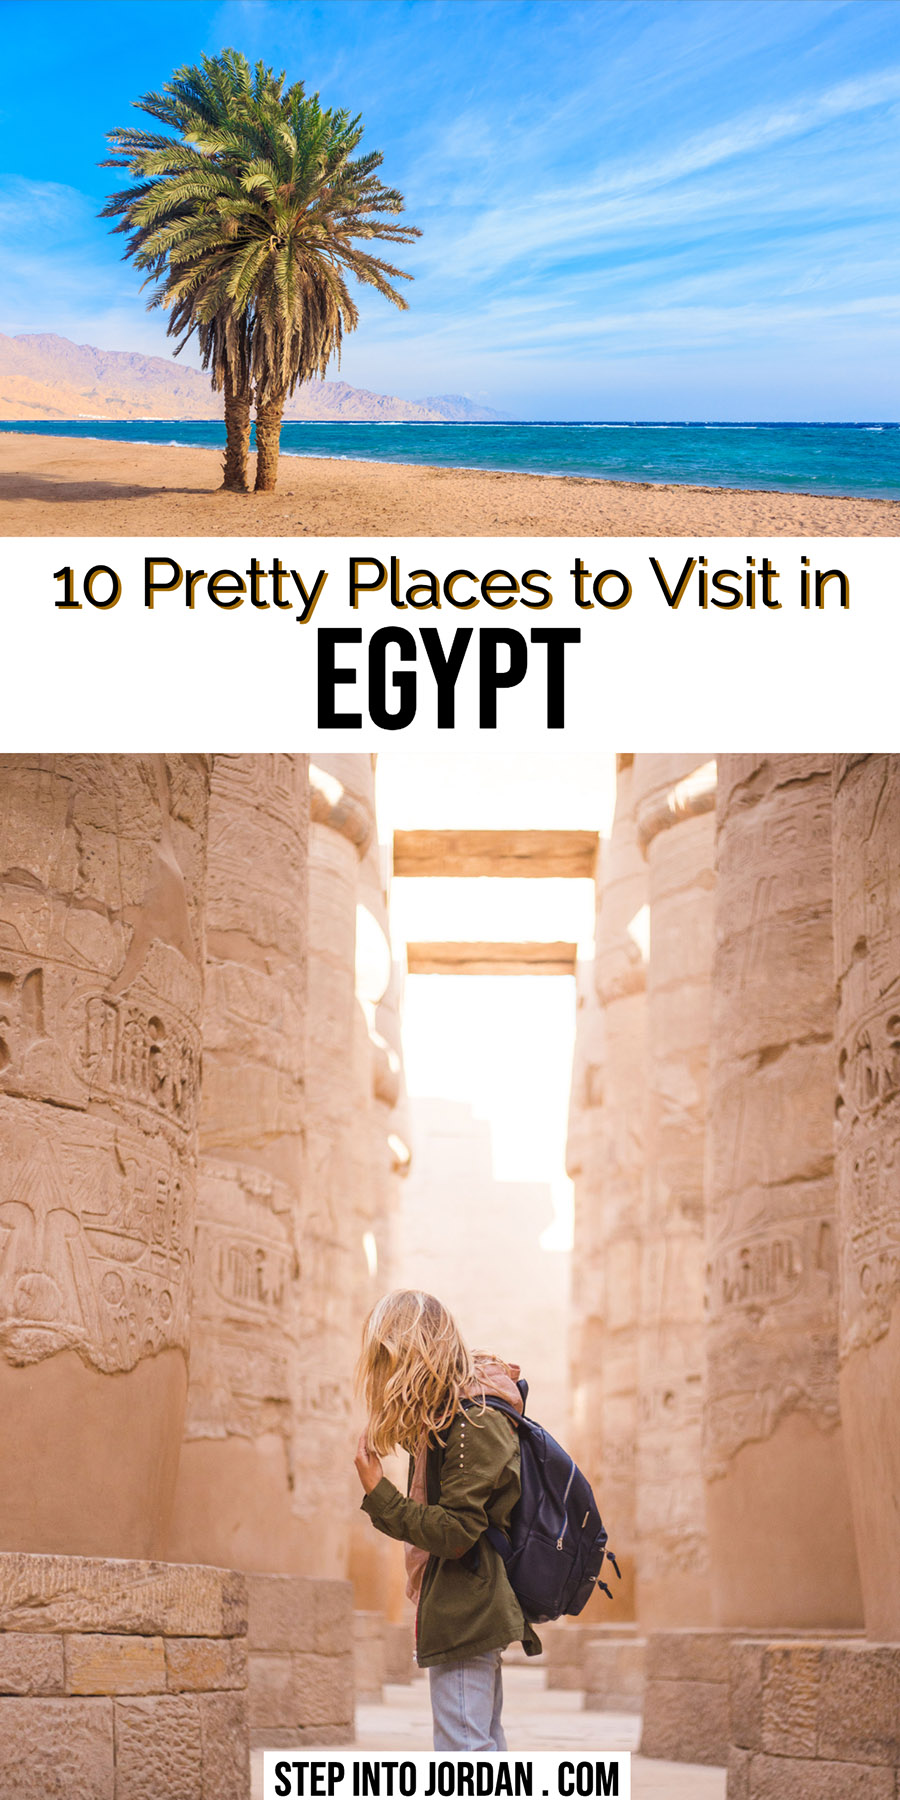 instagrammable places in Egypt